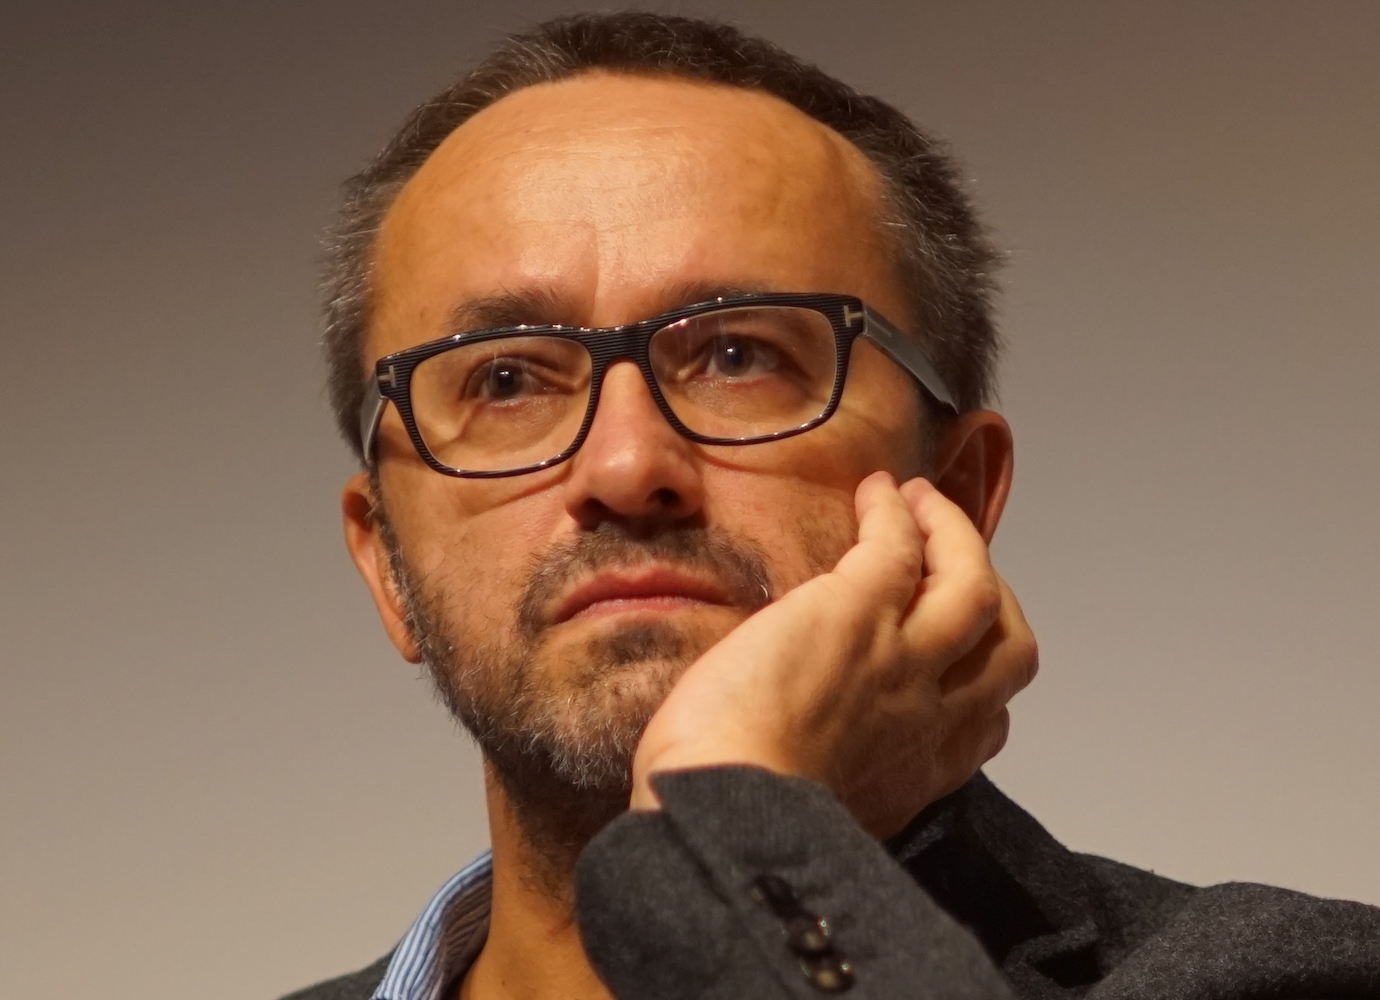 Russian director Andrei Zvyagintsev gives speech in support of Navalny in Novosibirsk